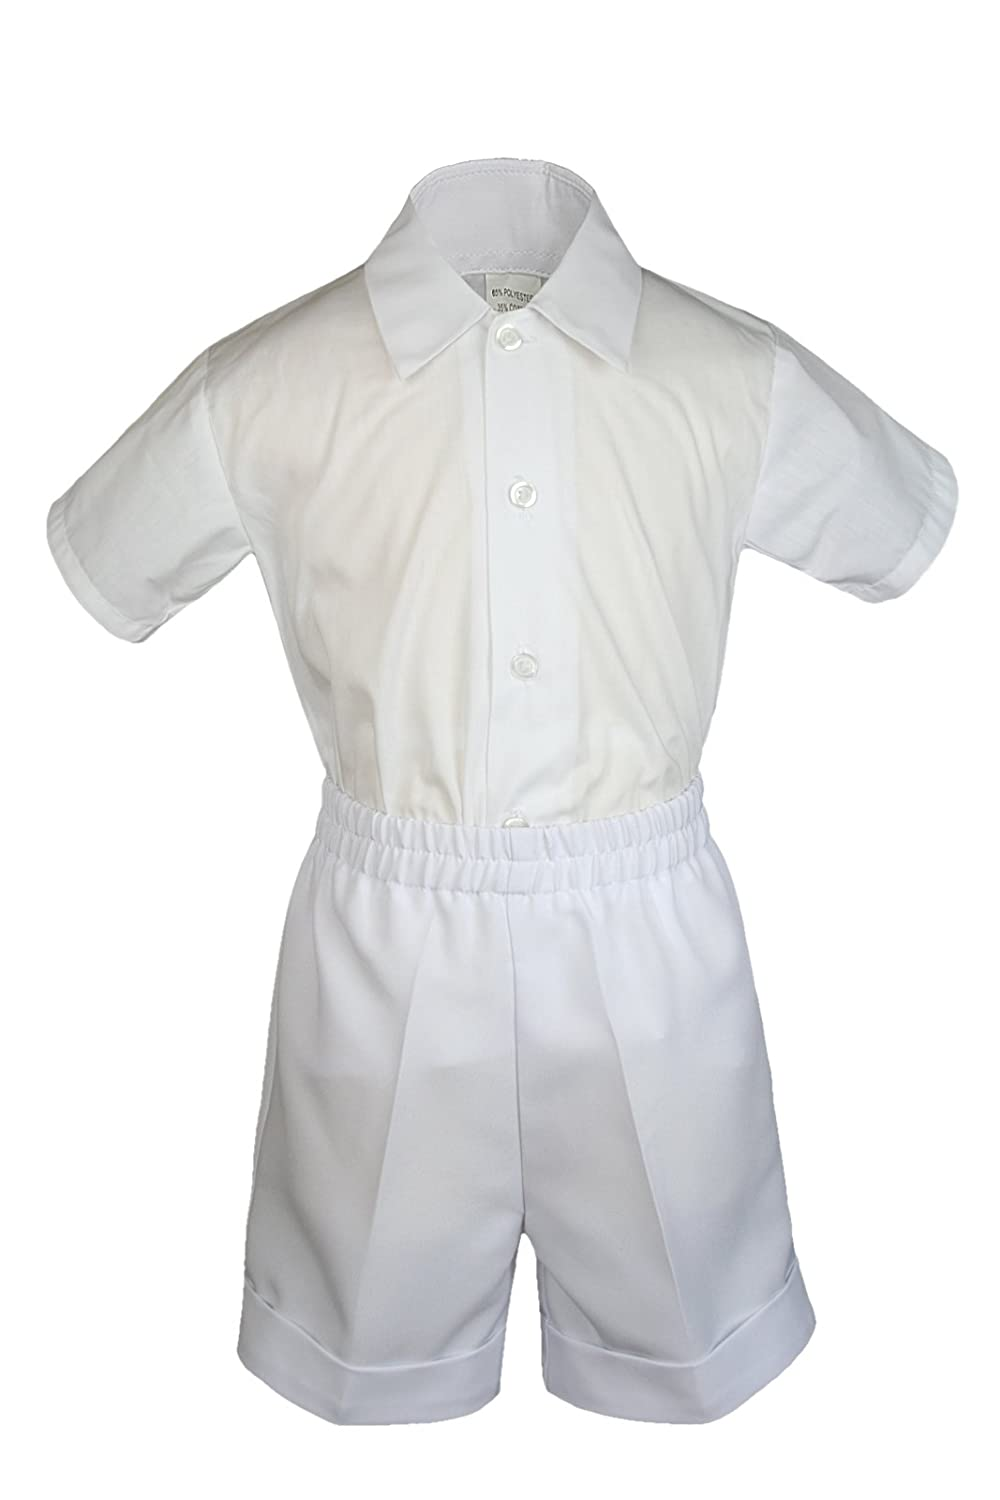 0-6 months S: 5pc White Baby Little Boy Christening Baptism Shorts Vest Set Hat S-4T